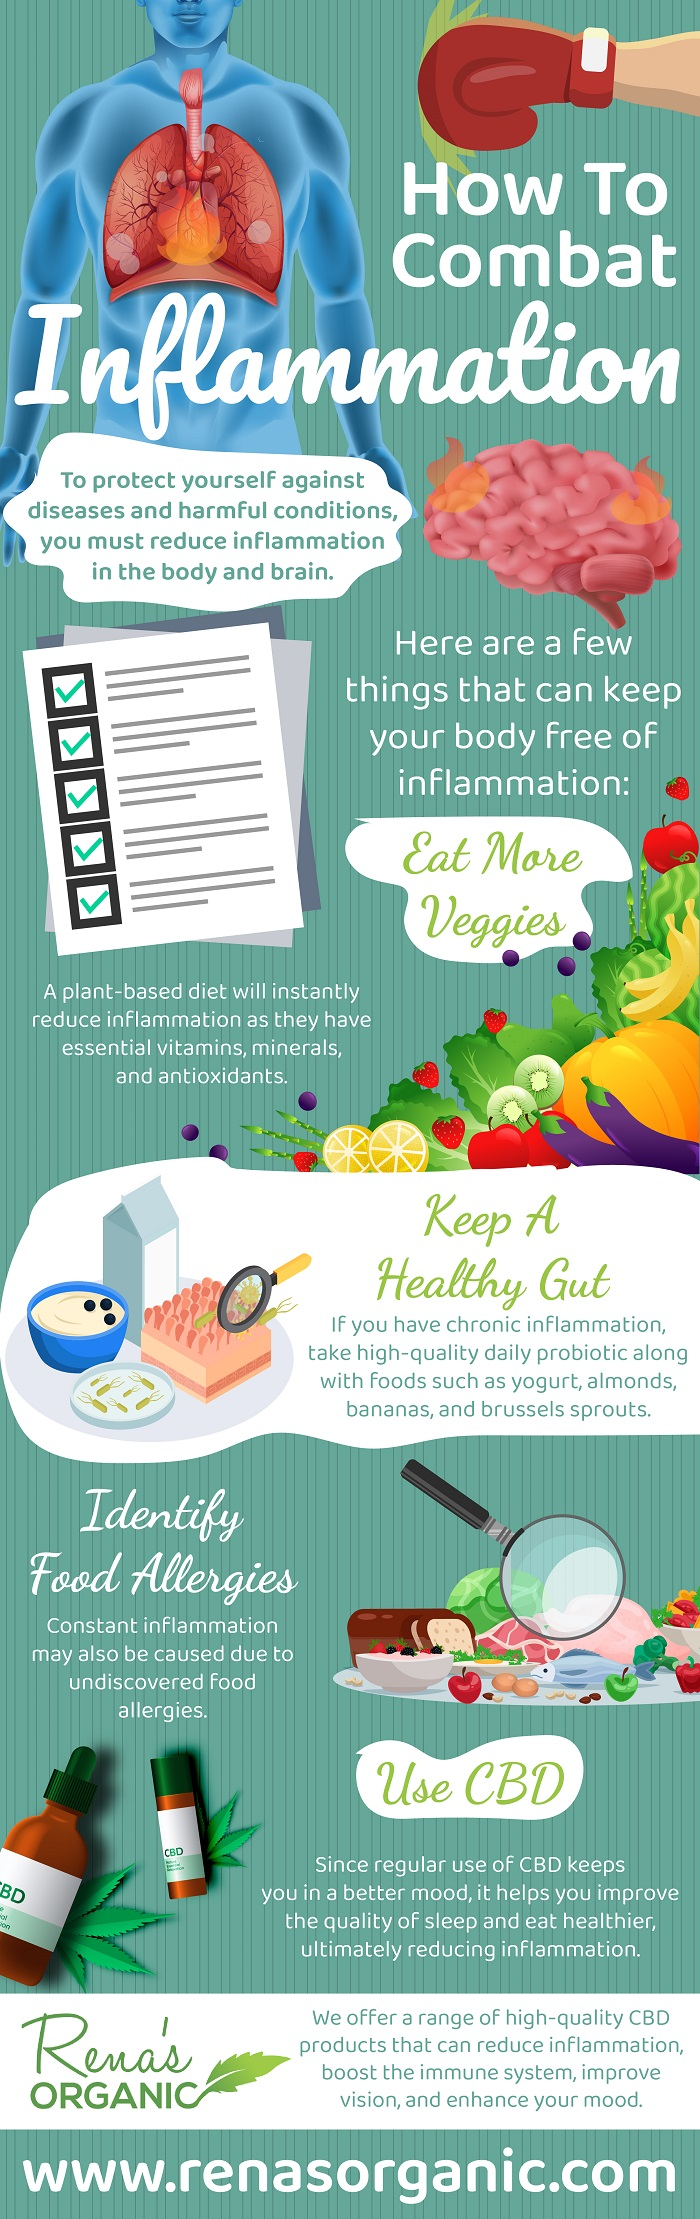 How To Combat Inflammation